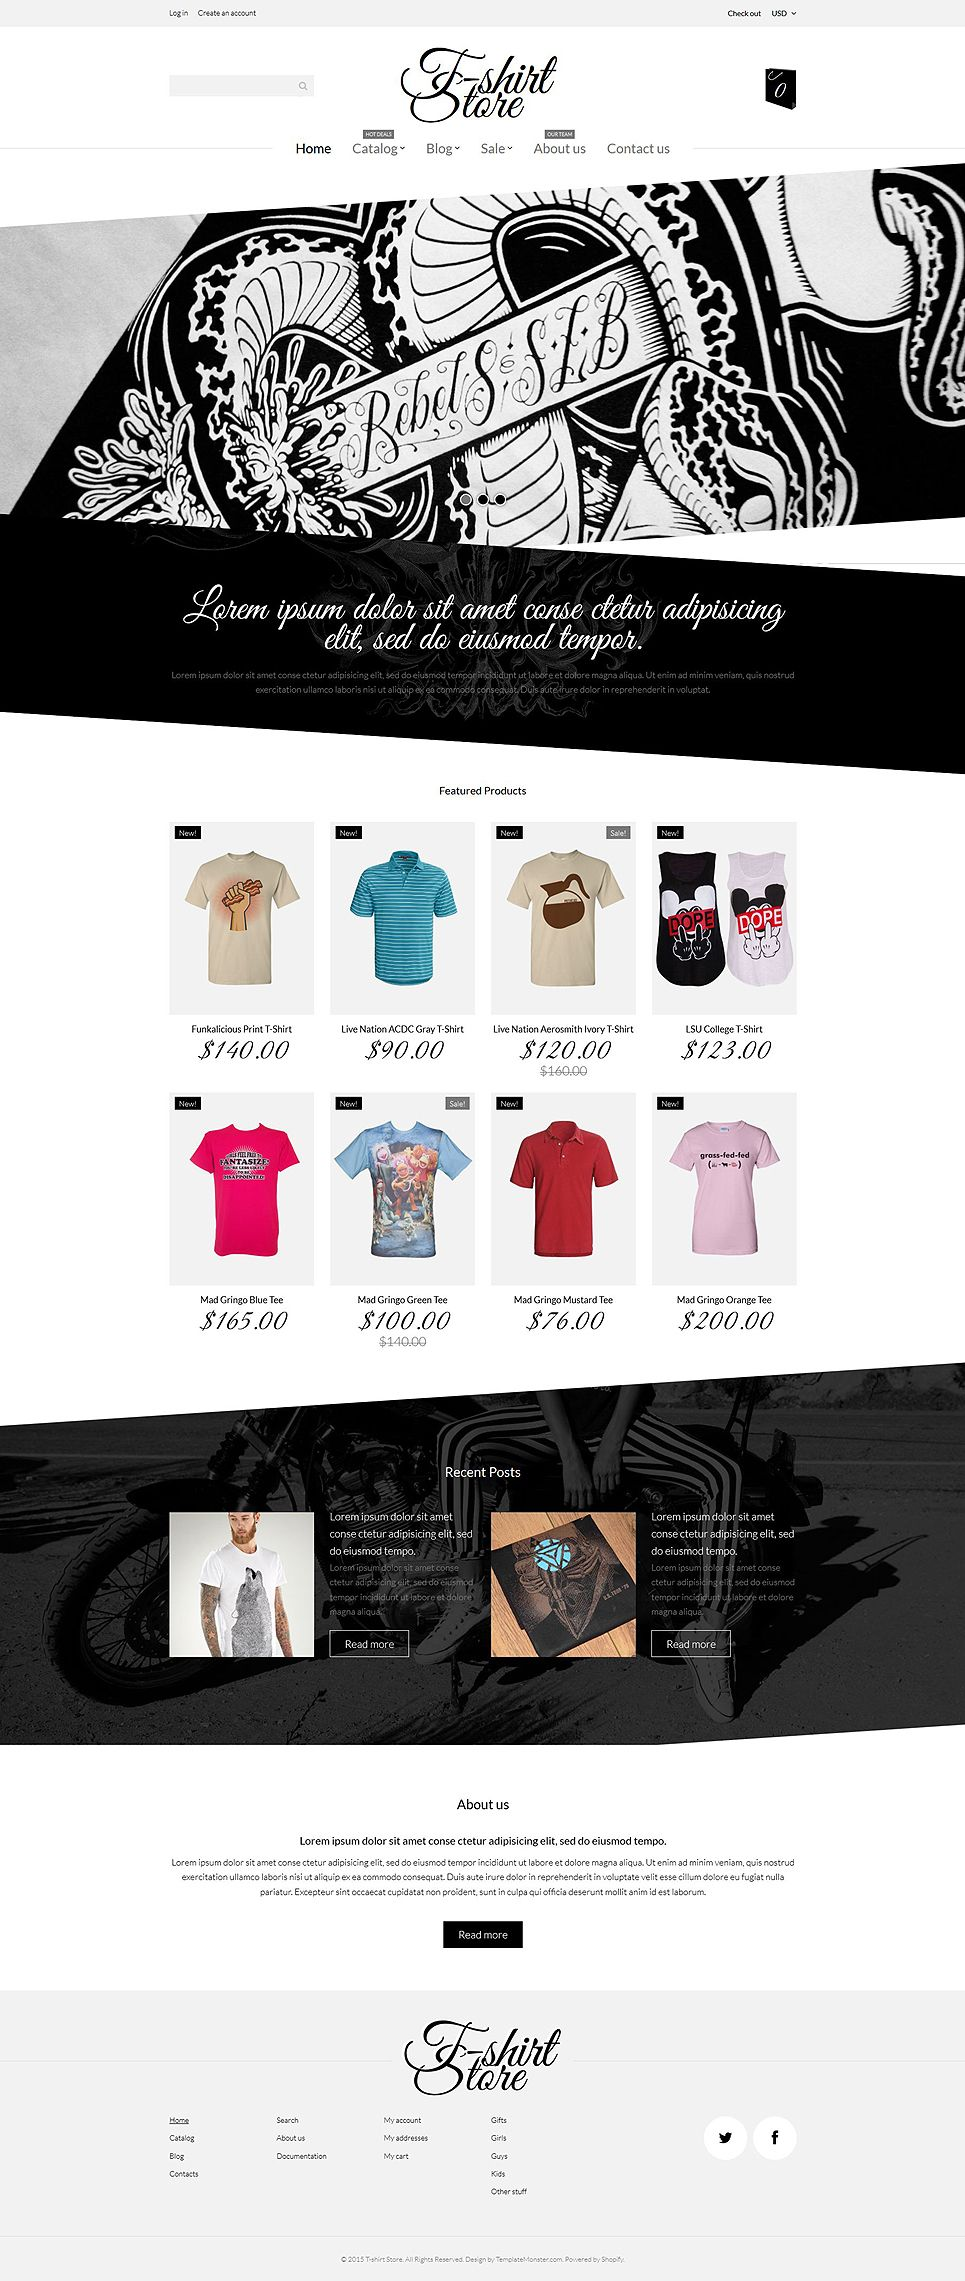 T Shirt Designs Shopify Theme 53570 Shopify Theme Shopify Design Shirt Designs